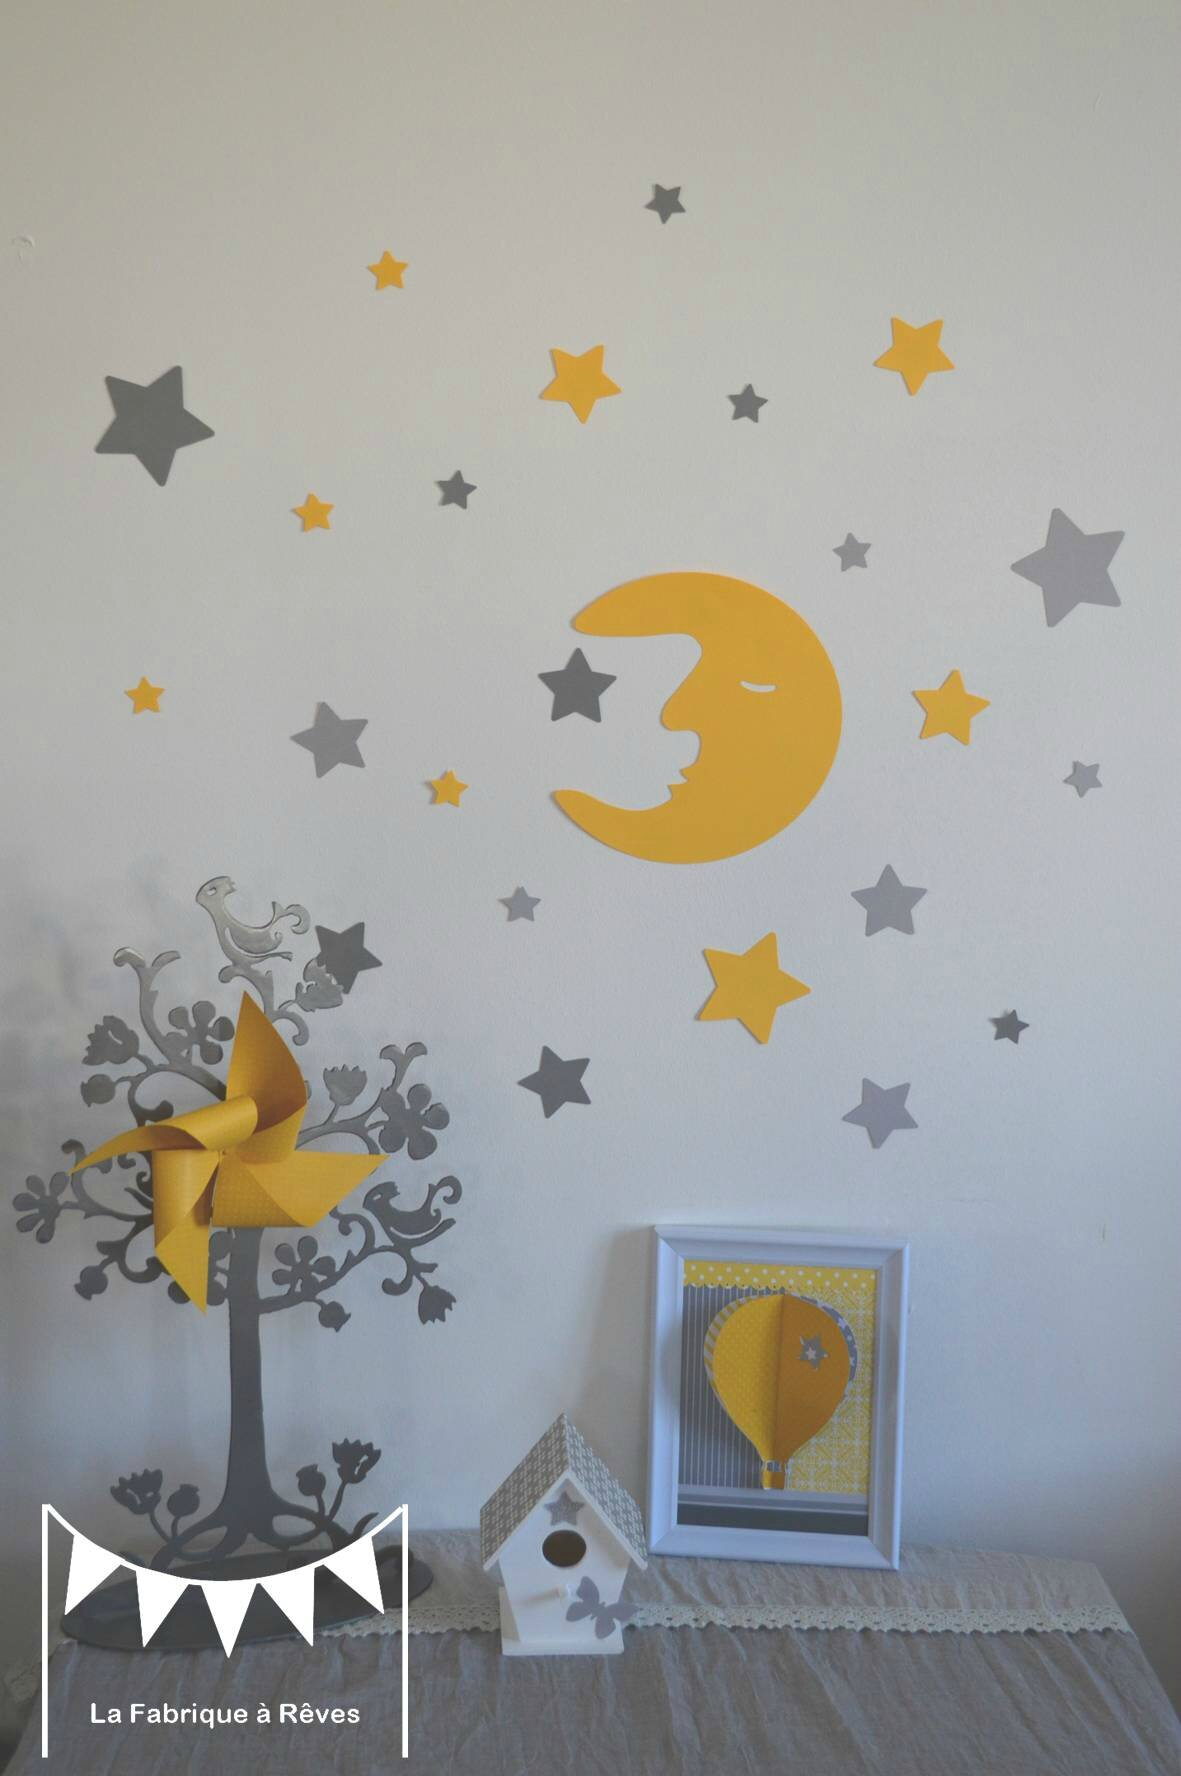 Stickers d coration chambre enfant fille b b gar on lune et toiles jaune gris photo de th me for Chambre bebe jaune moutarde